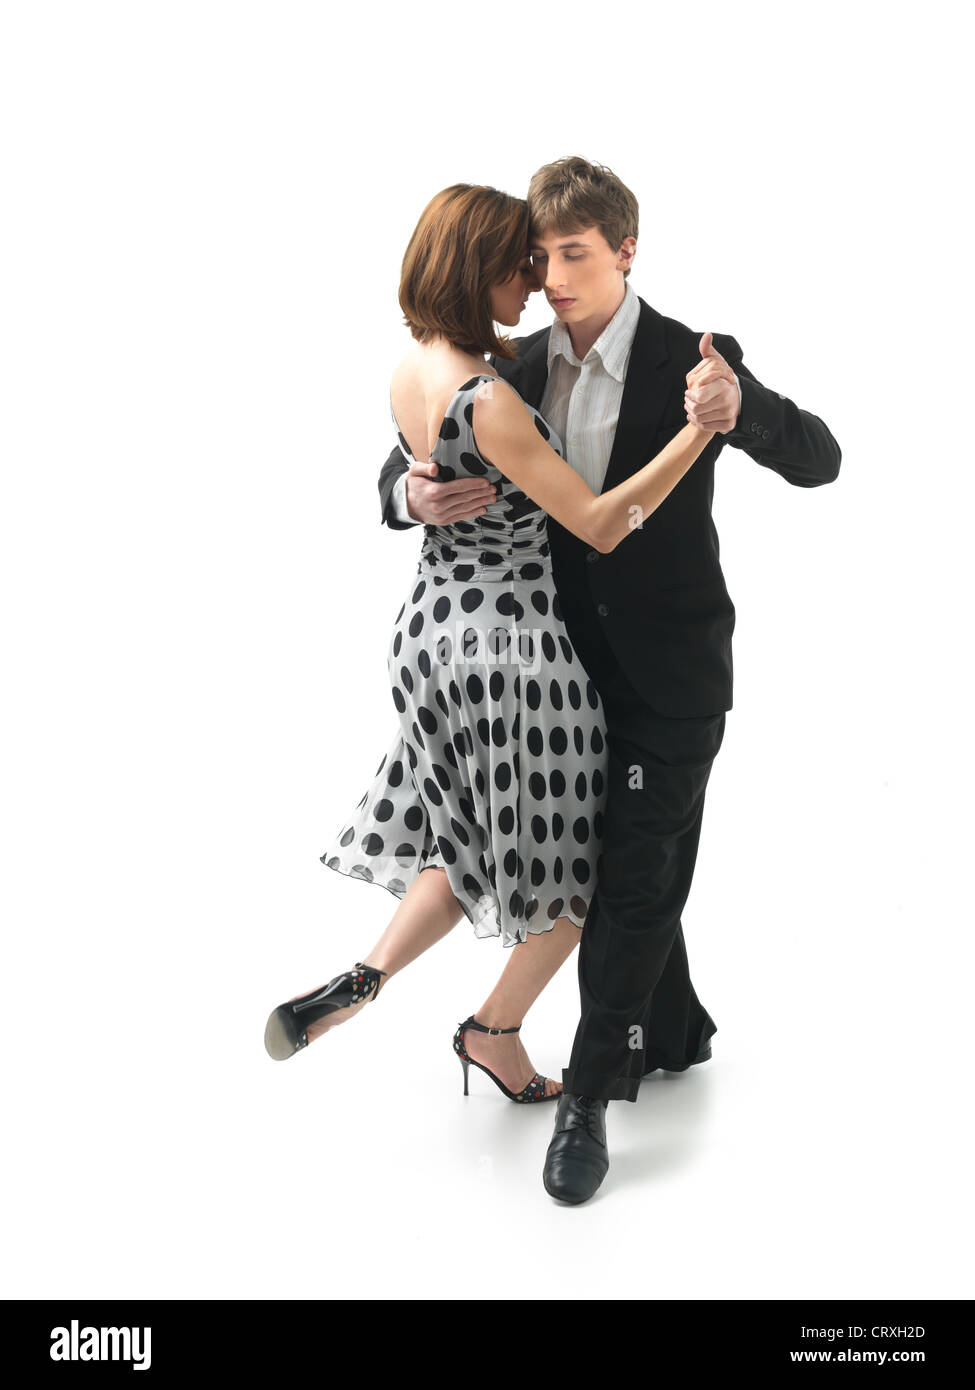 Classical Girl Live Wallpaper Download Young Couple Dancing Argentinian Tango On White